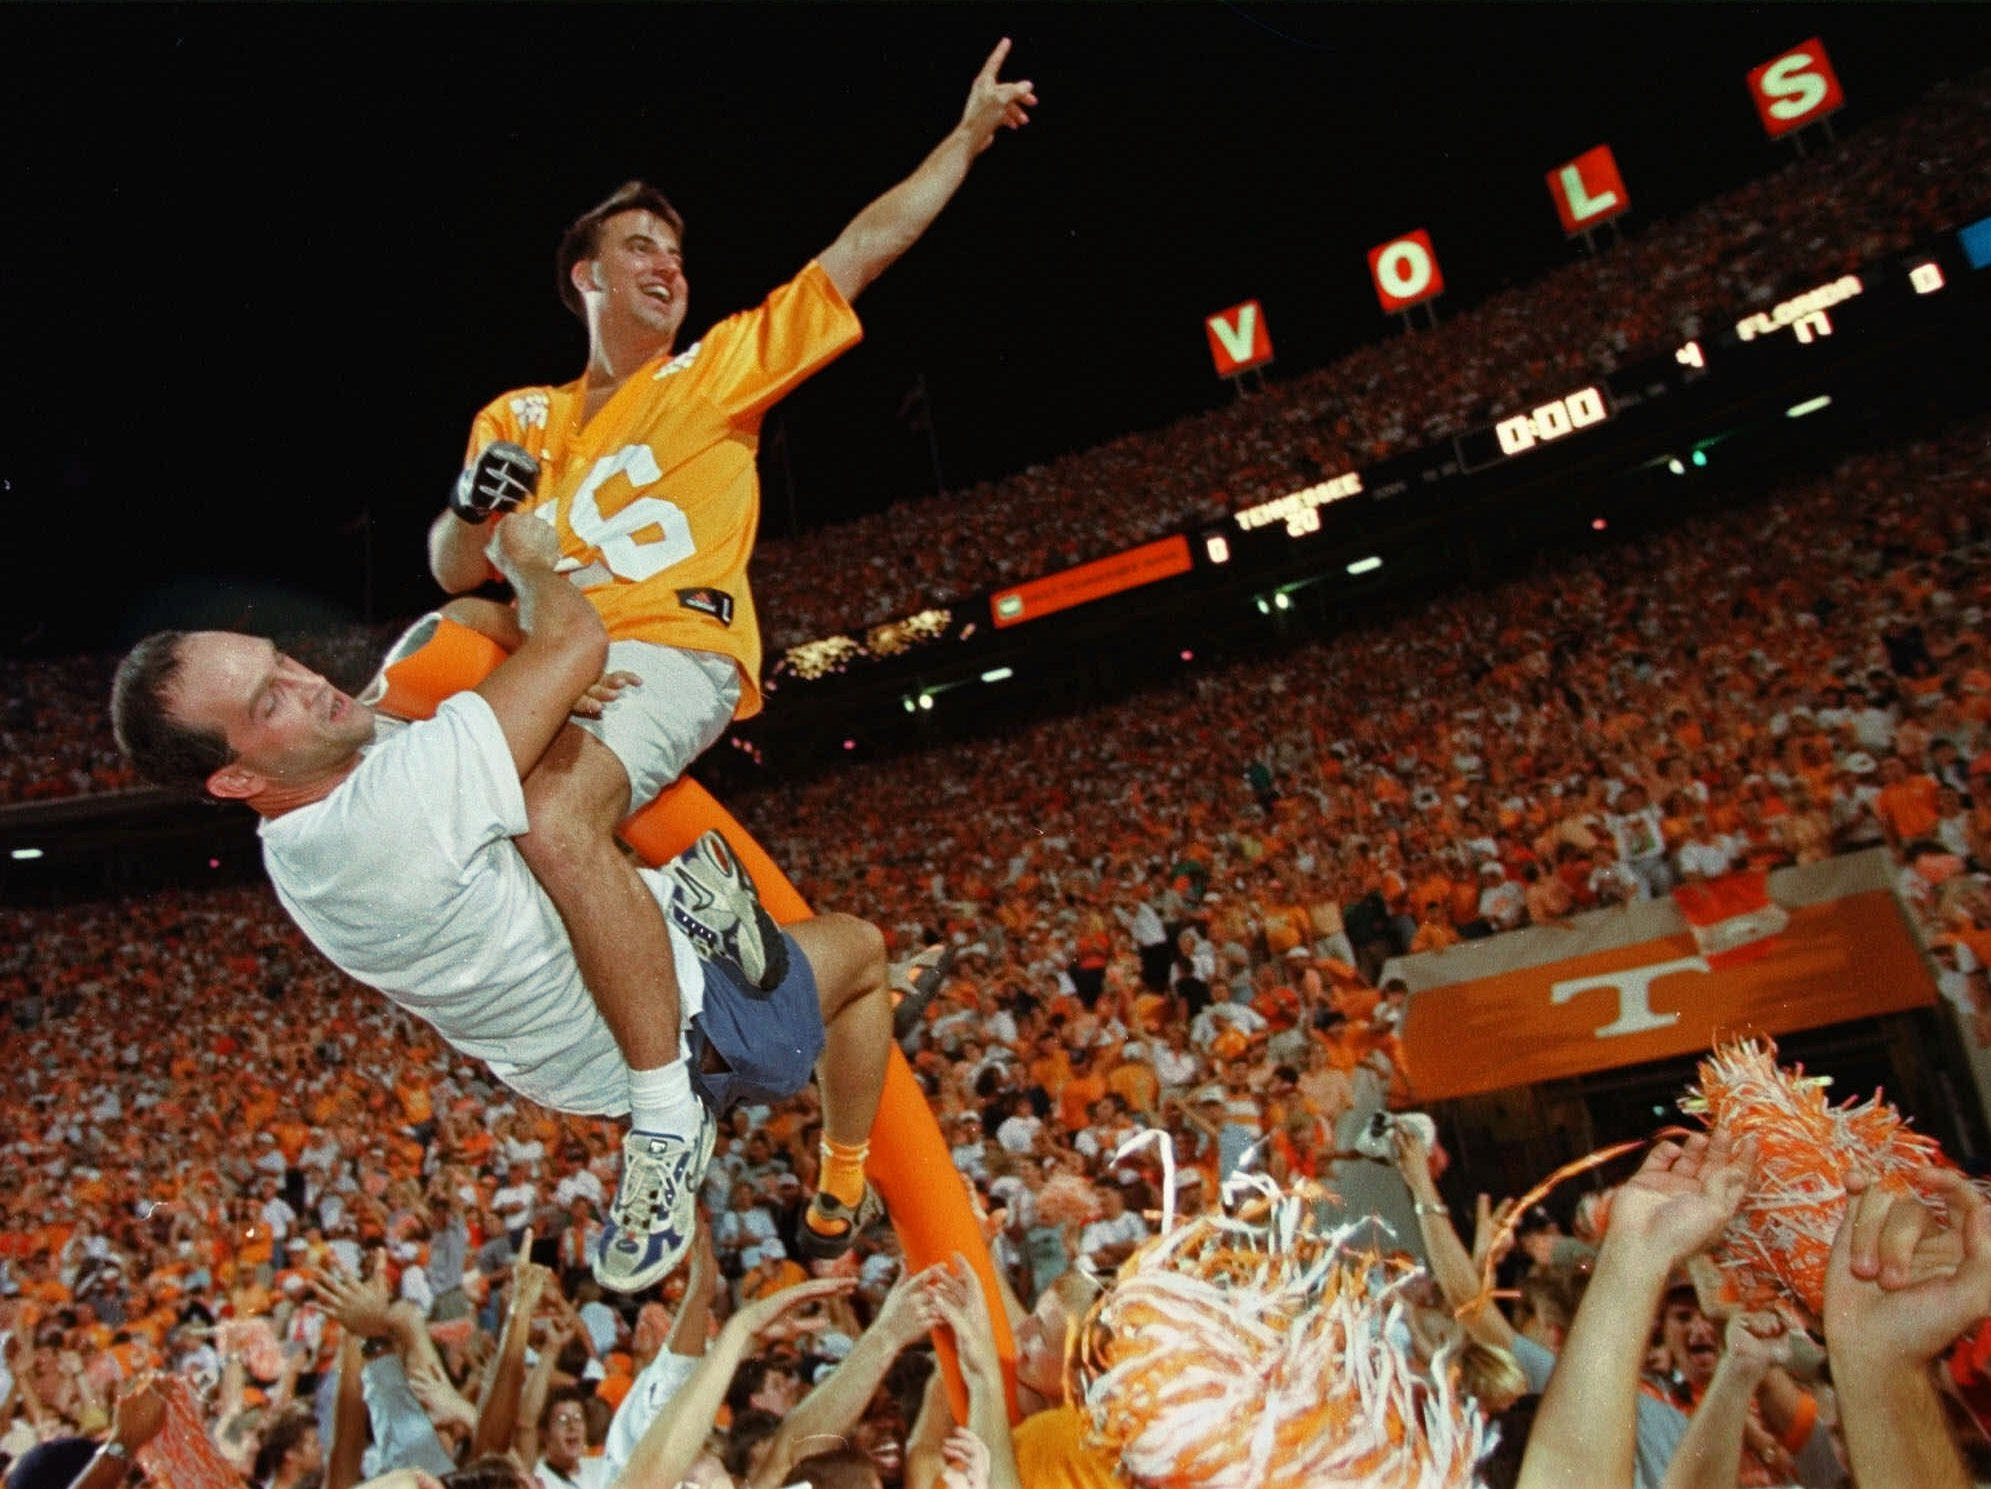 A fan wearing a Peyton Manning jersey sits on top of what is left of a goalpost as Tennessee fans take over the playing field after the Volunteers defeated Florida 20-17 in overtime in Knoxville, Tenn, on Saturday, Sept. 19, 1998. Florida had beaten Tennessee for the previous five years.